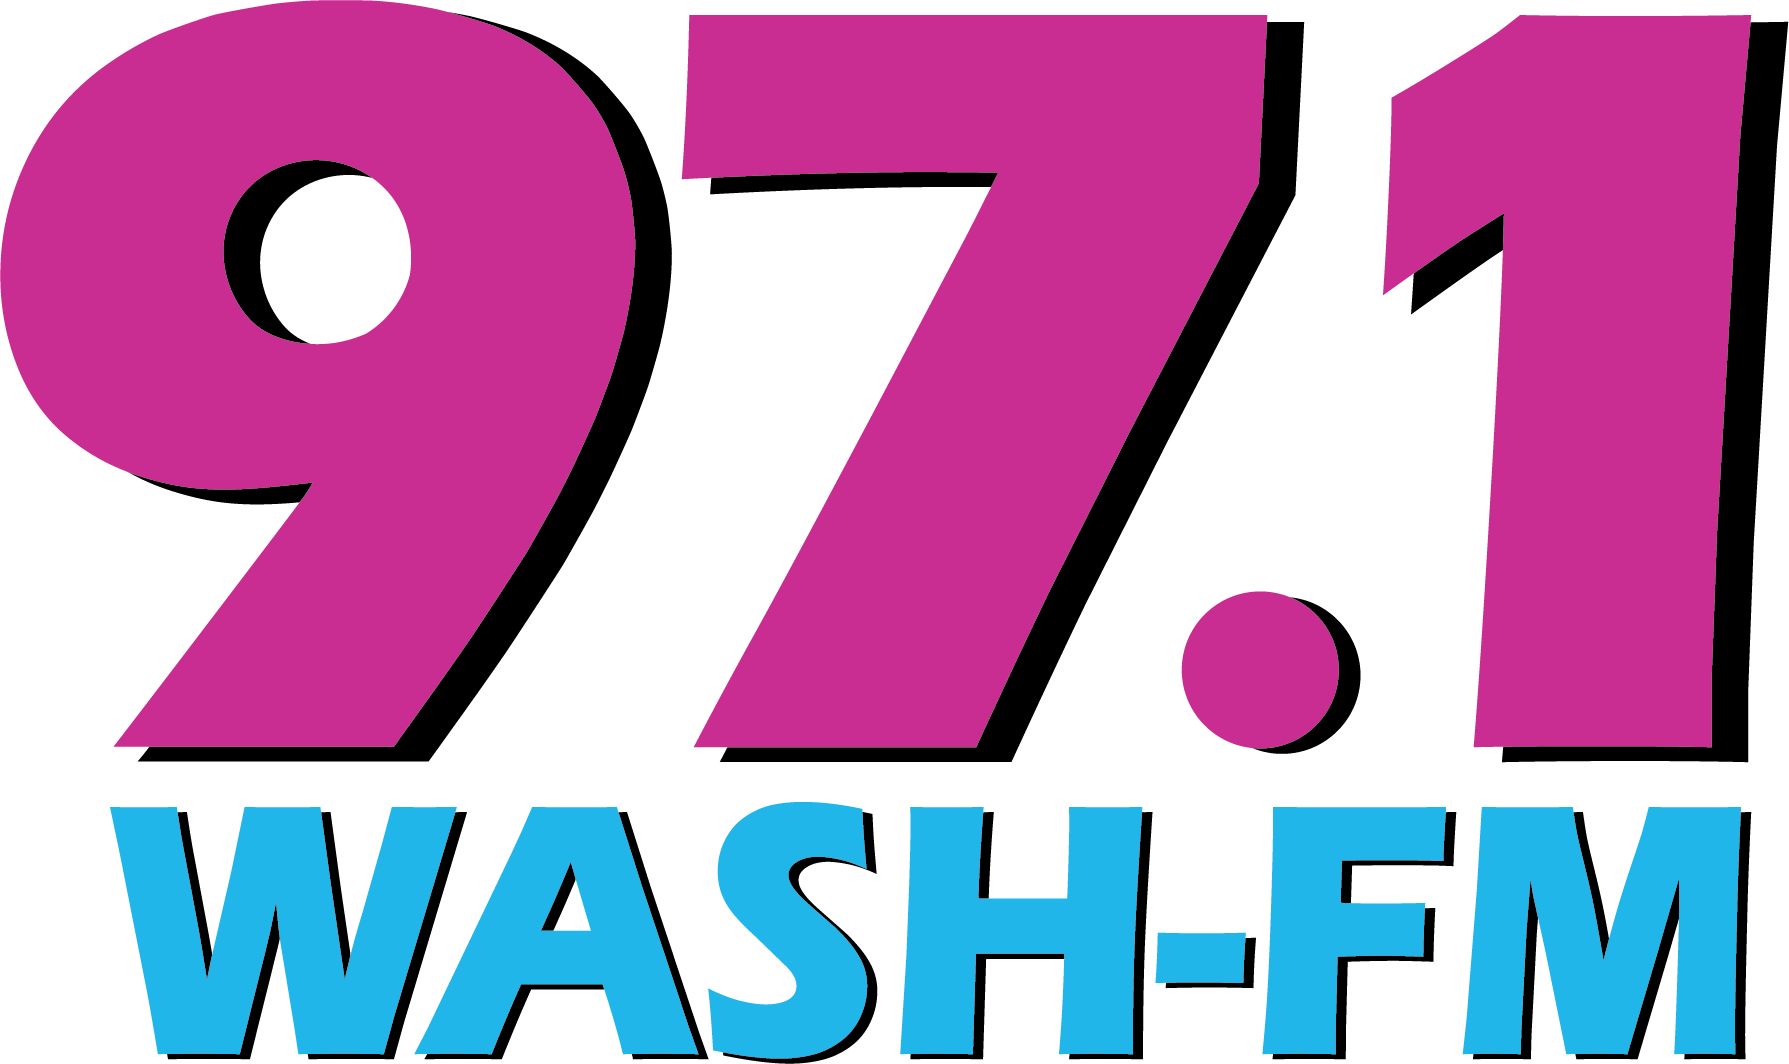 I heart the 80s clipart graphic library download 97.1 WASH-FM - Washington's Variety of the 80's 90's and Today! graphic library download